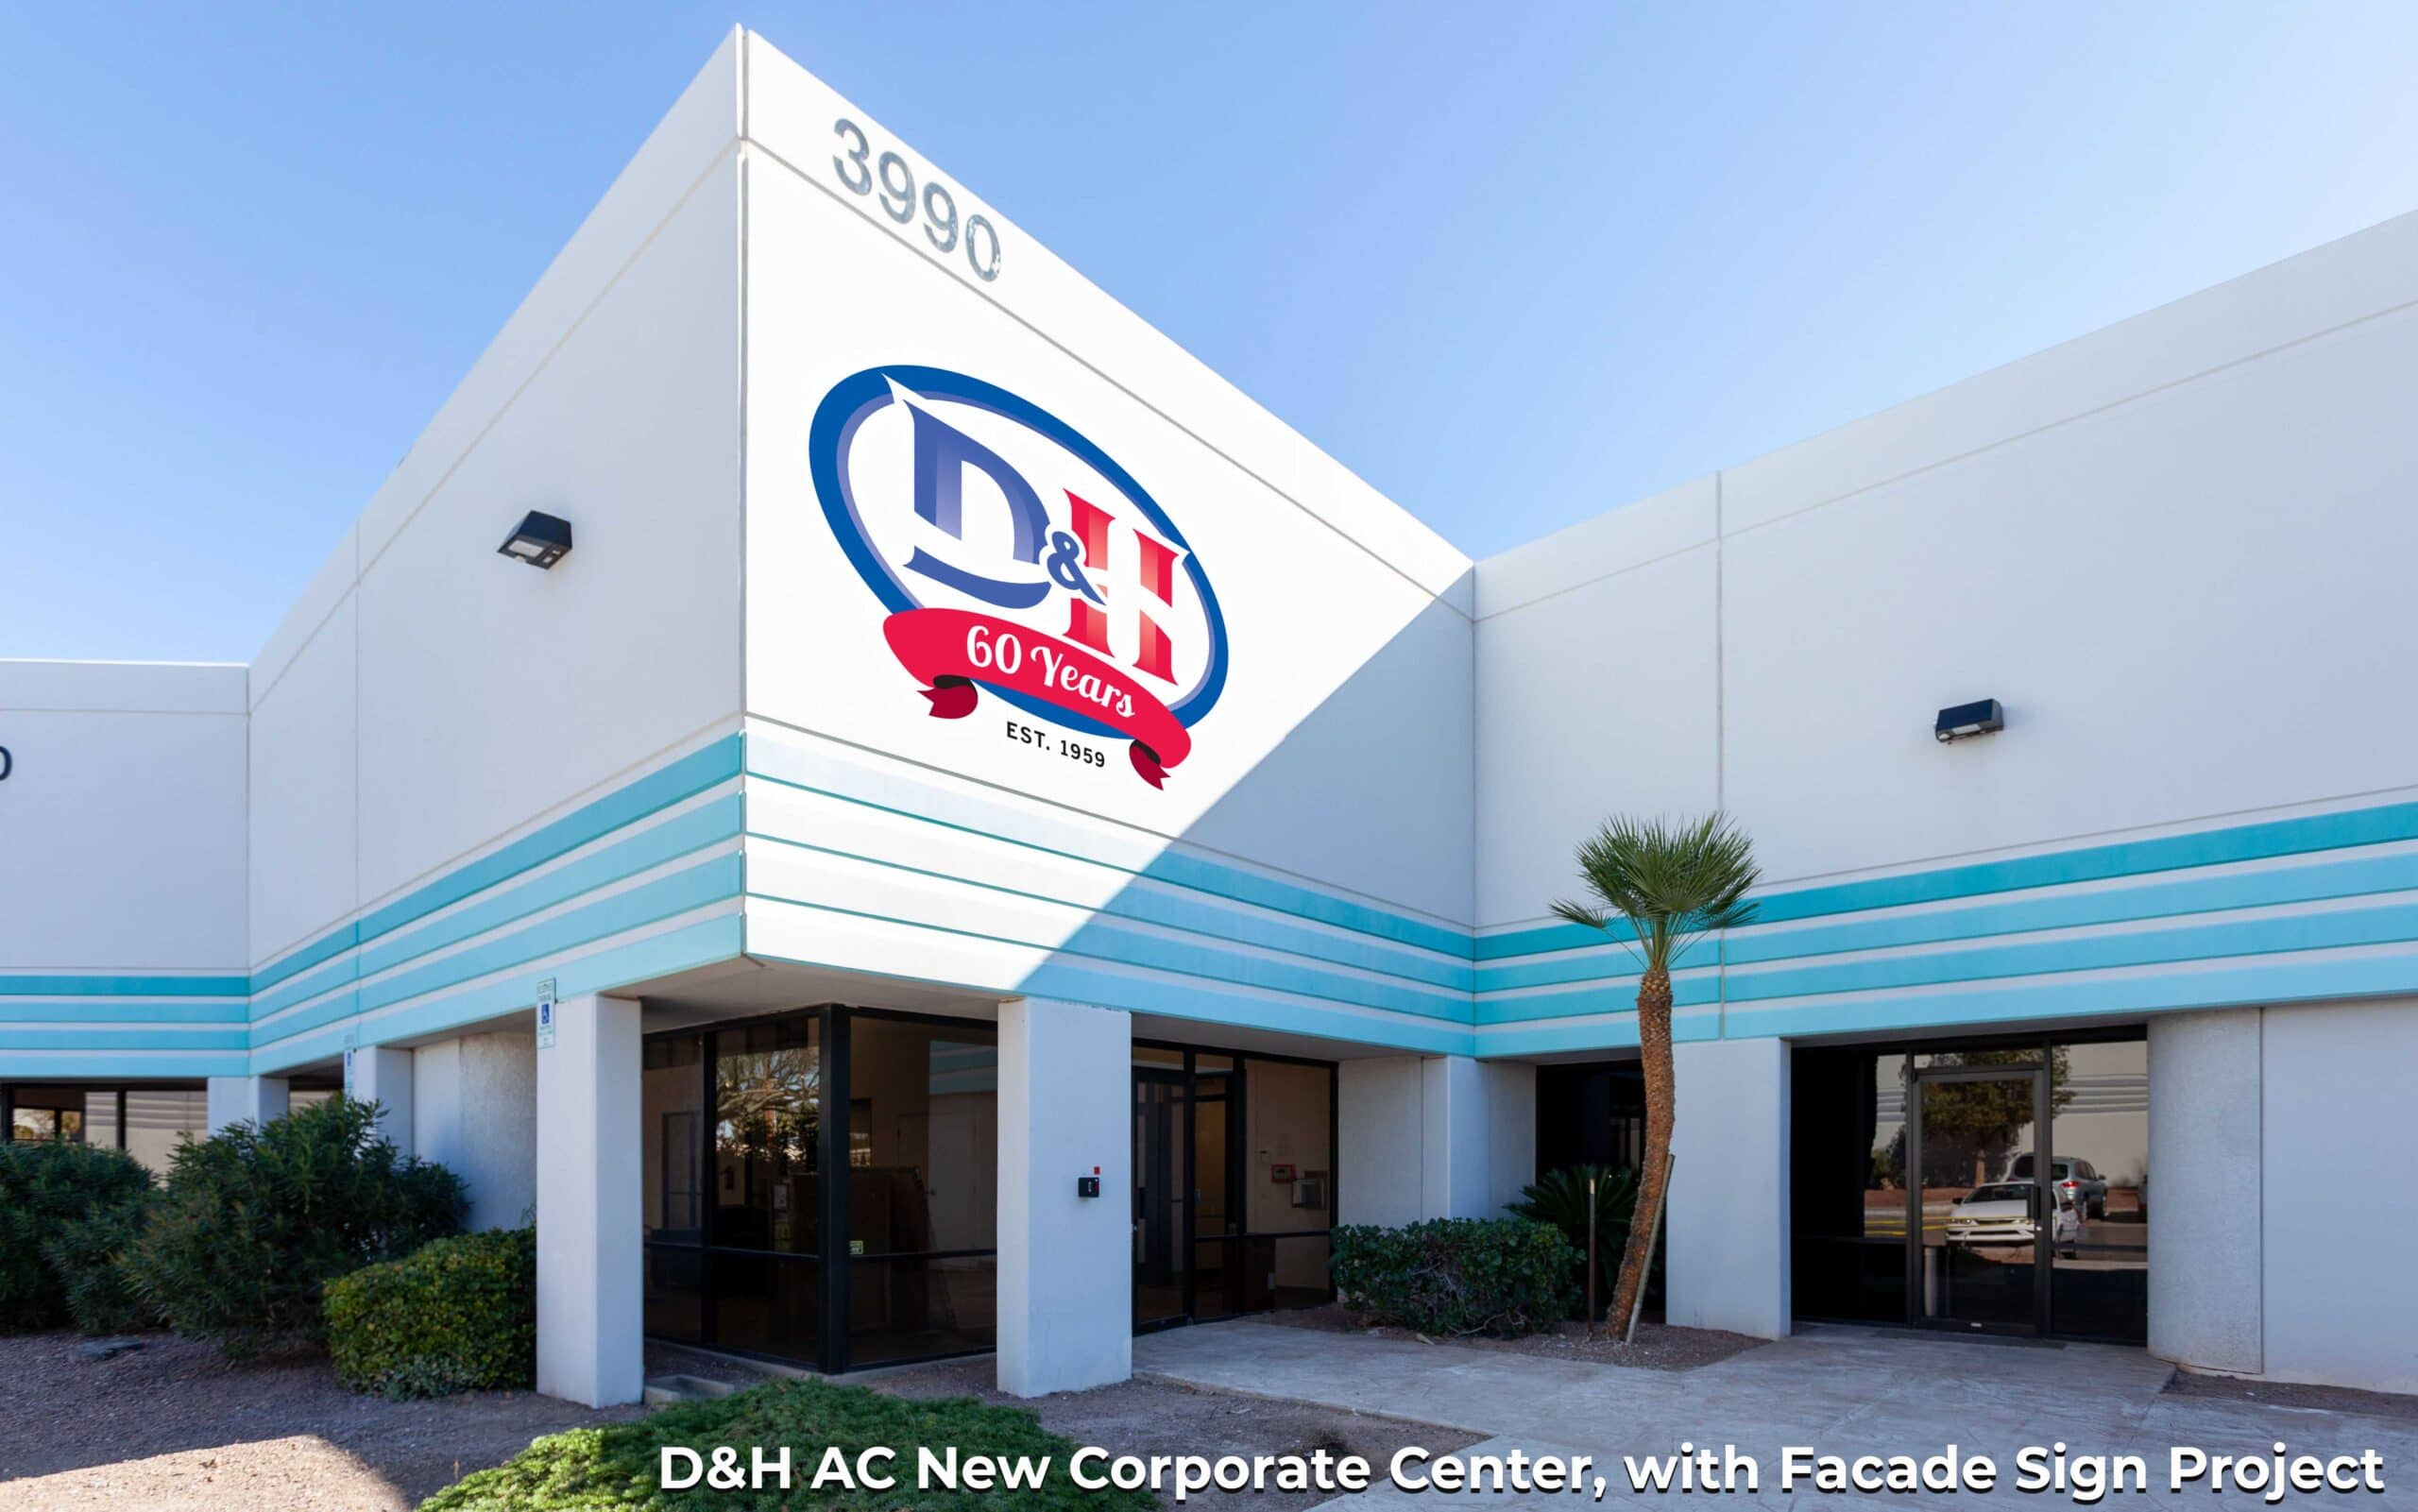 D&H Provides Air Conditioning Repair Service in all of Tucson, Vail, Marana, Oro Valley, South Tucson and other cities in Southern Arizona